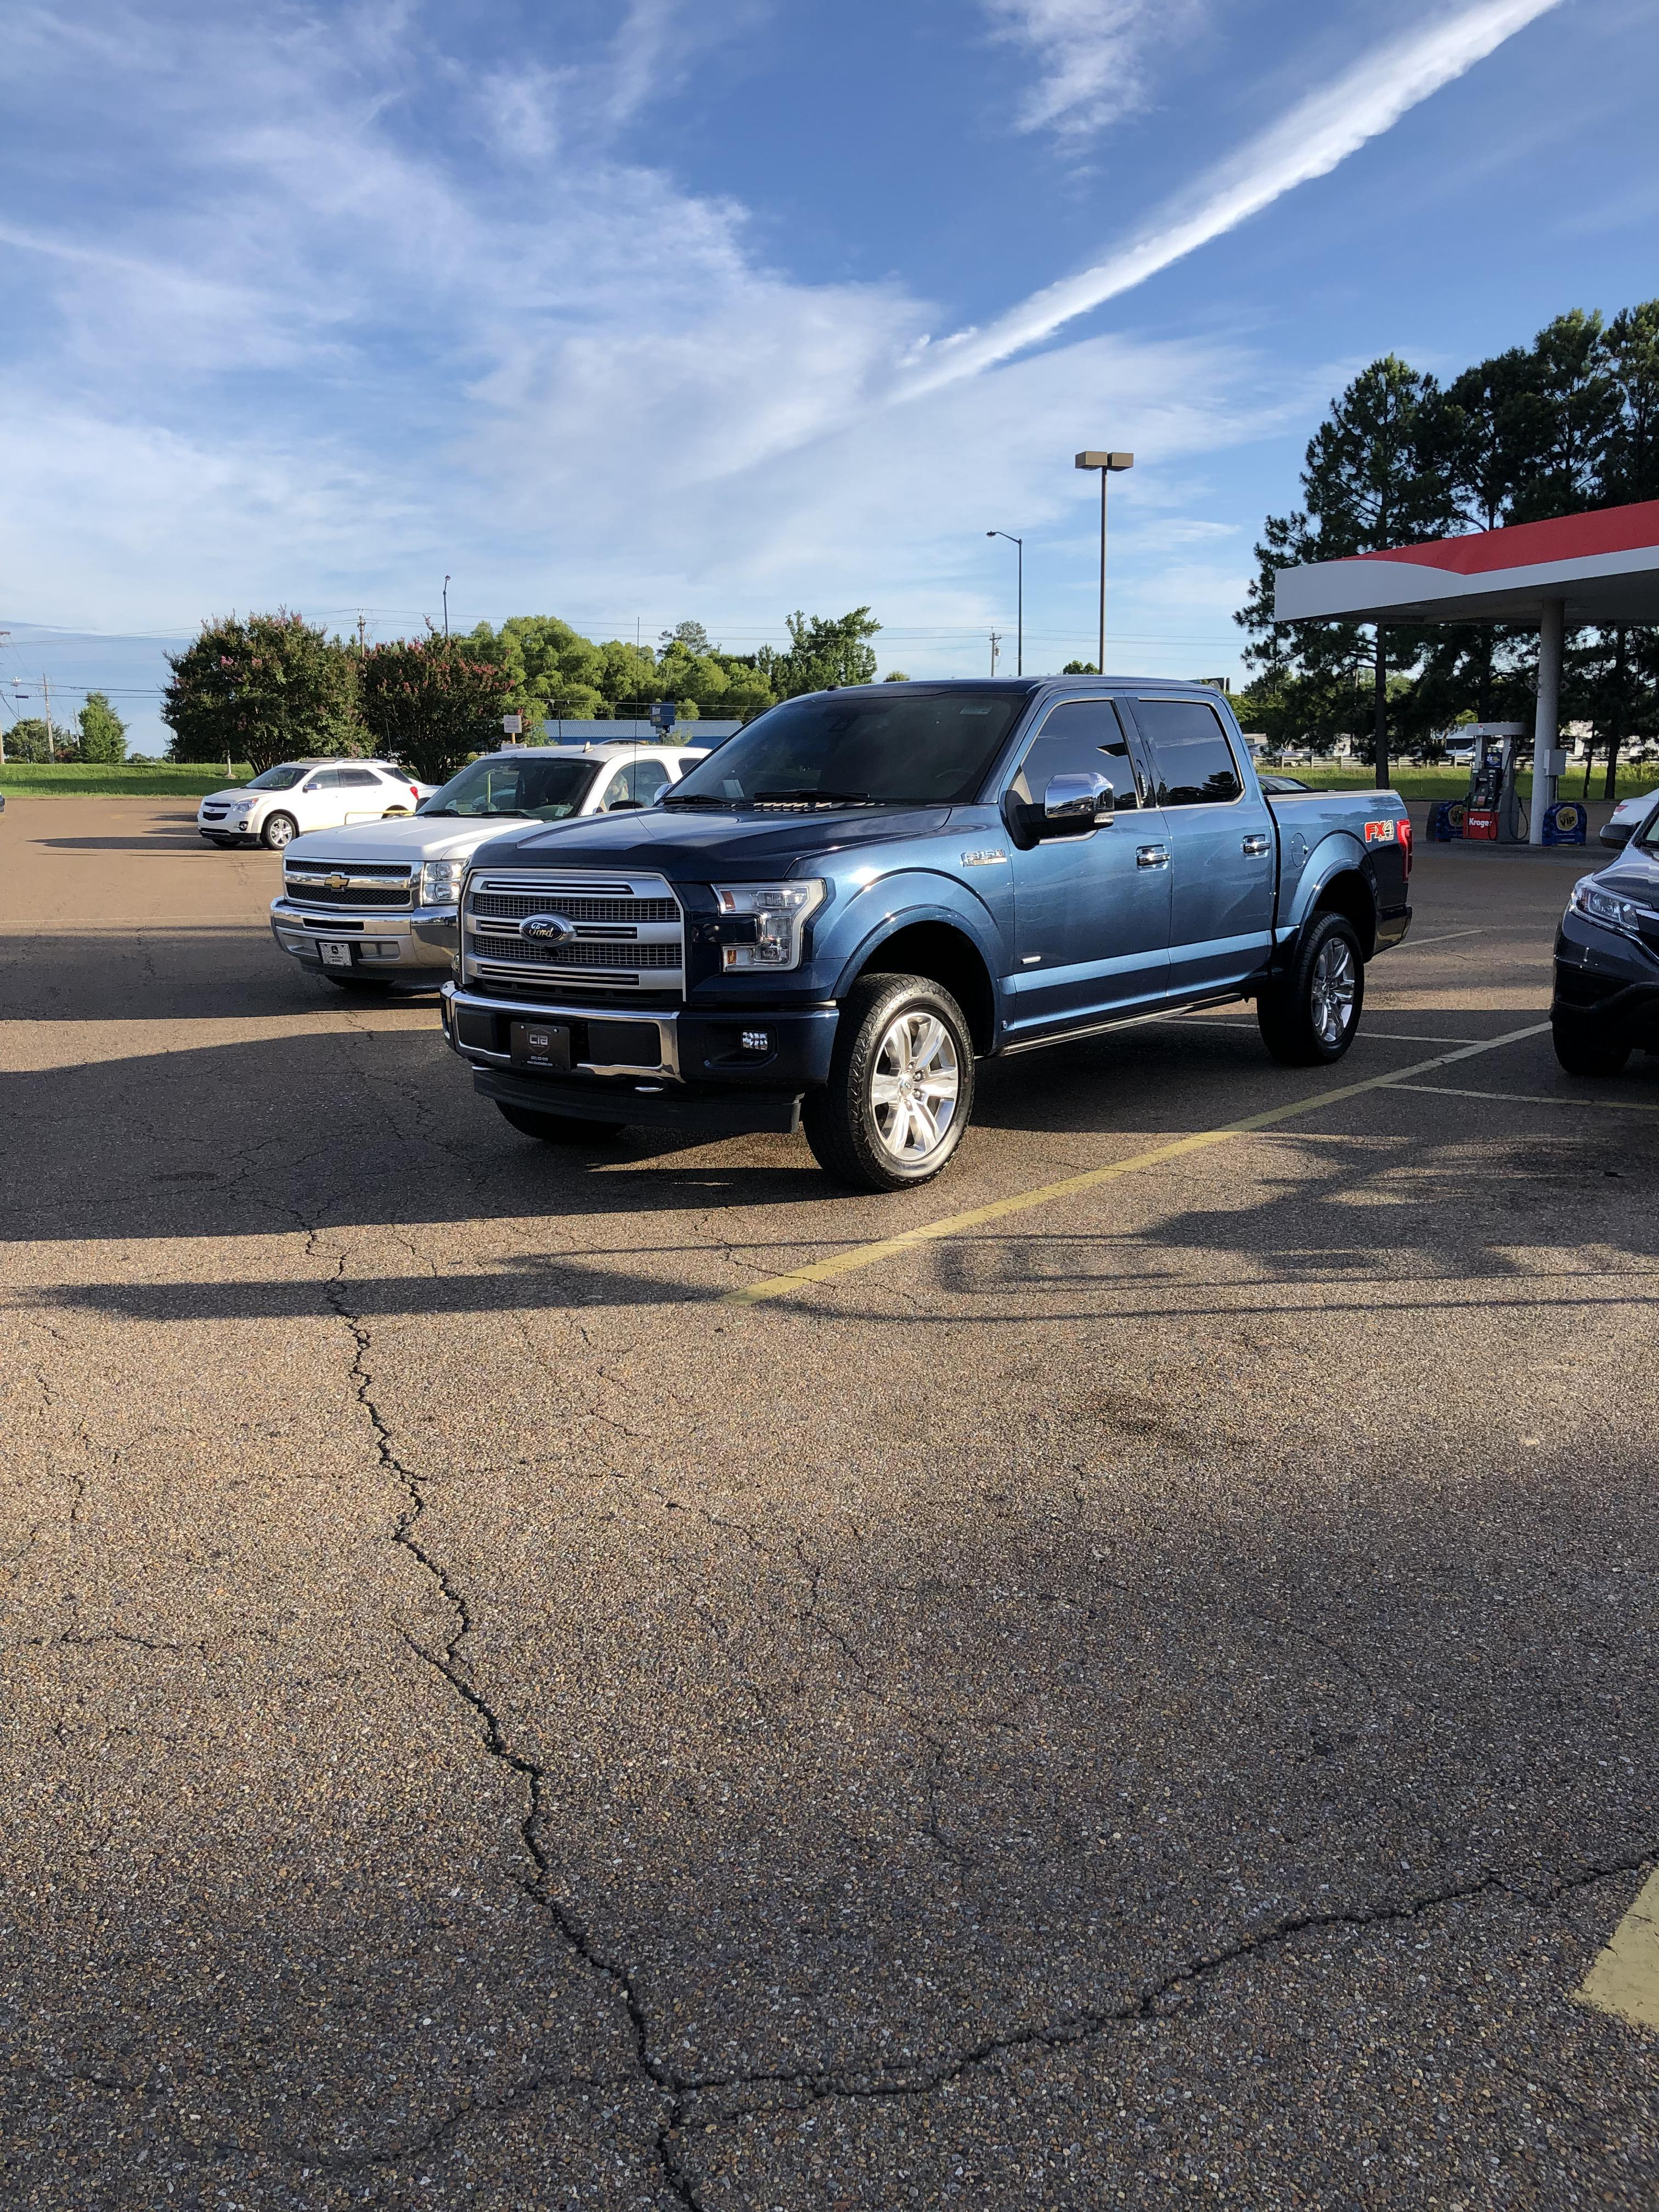 Ford F150 Blue Jeans : jeans, Jeans, Metallic